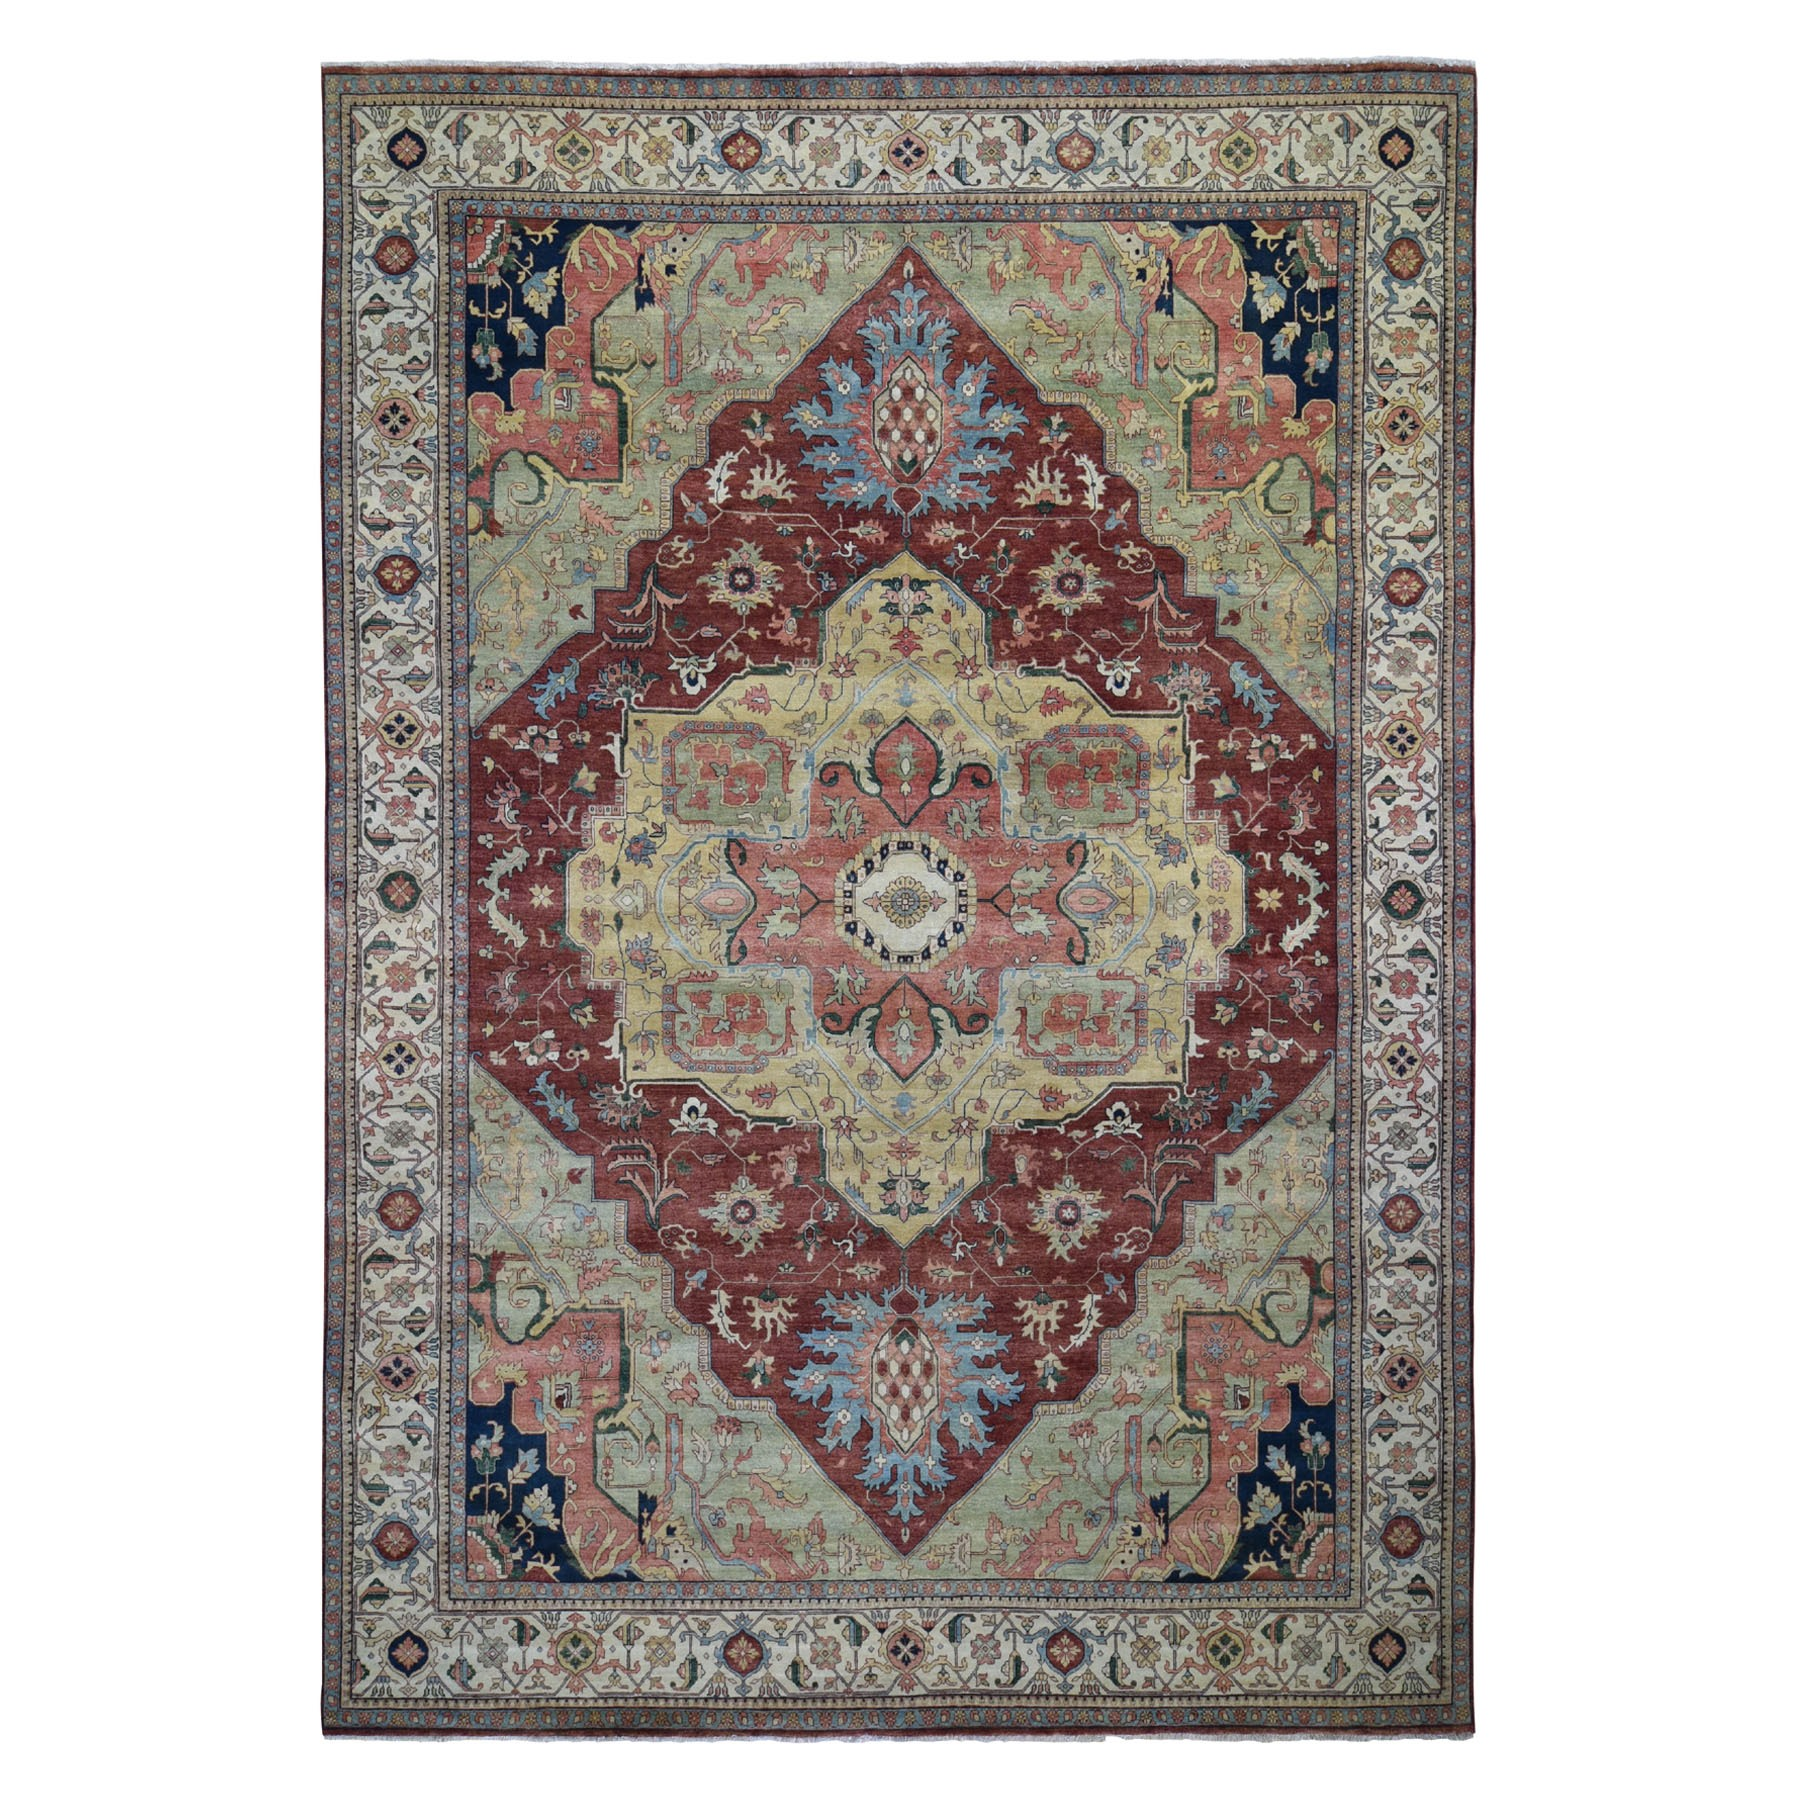 10'X14' Antiqued Heriz Re-Creation Pure Wool Hand Knotted Oriental Rug moad8dba